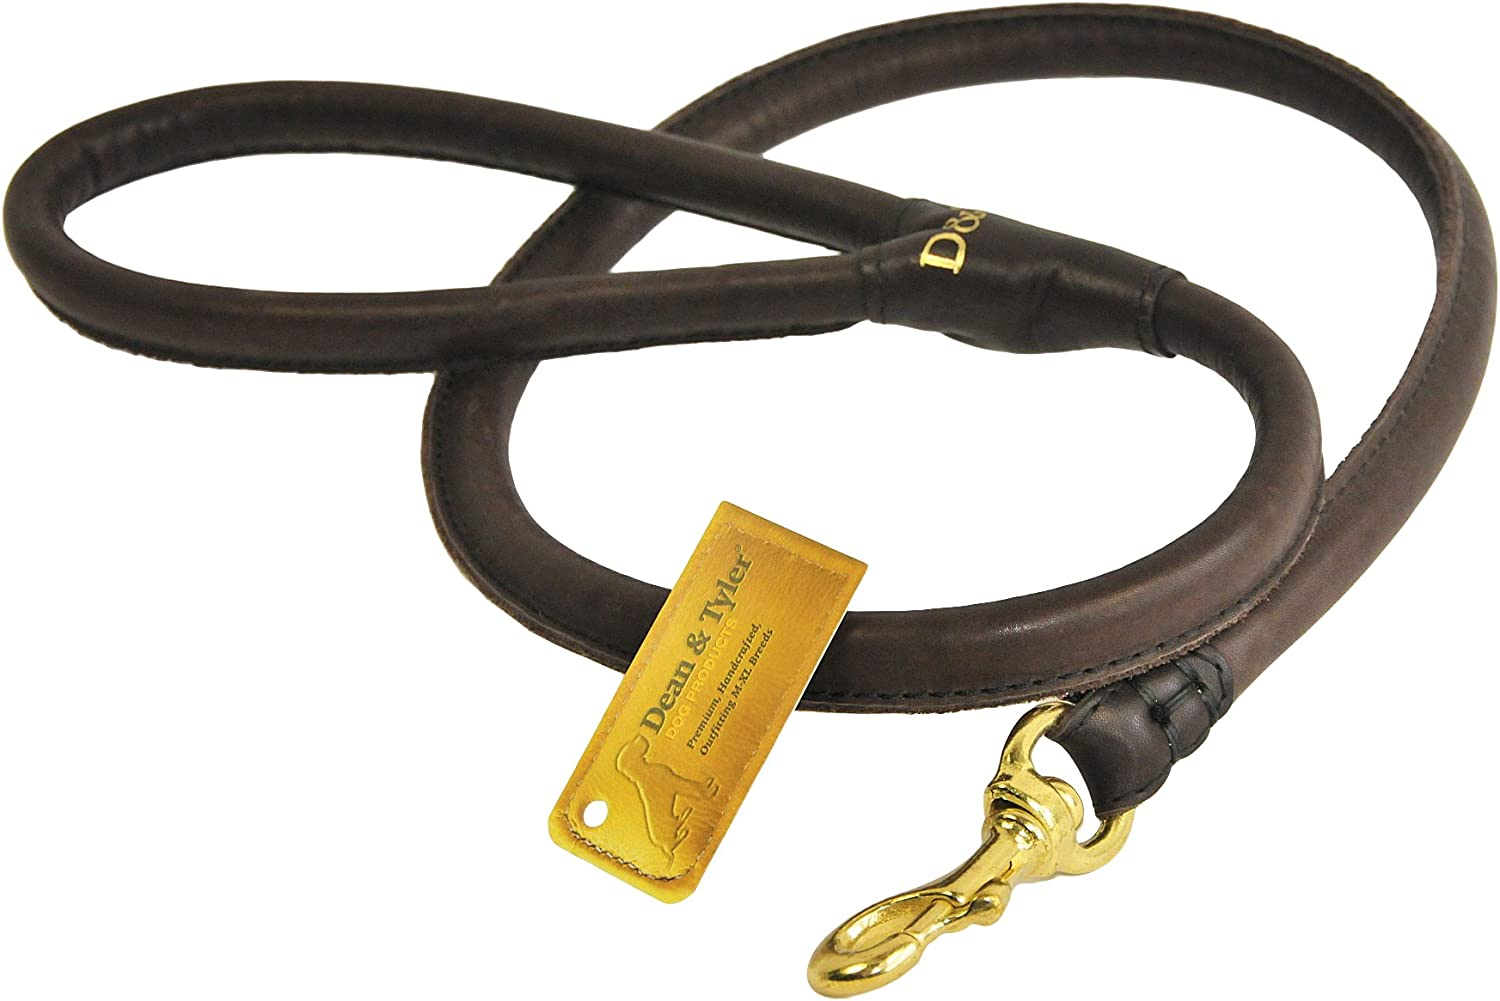 Dean & Tyler  Tamed Beauty  Dog Best Selling Rolled Leather Leash  High Quality Leather From Europe  BROWN  4 Foot  1 2  Diameter  Great for Everyday Use  Available in Different Size.